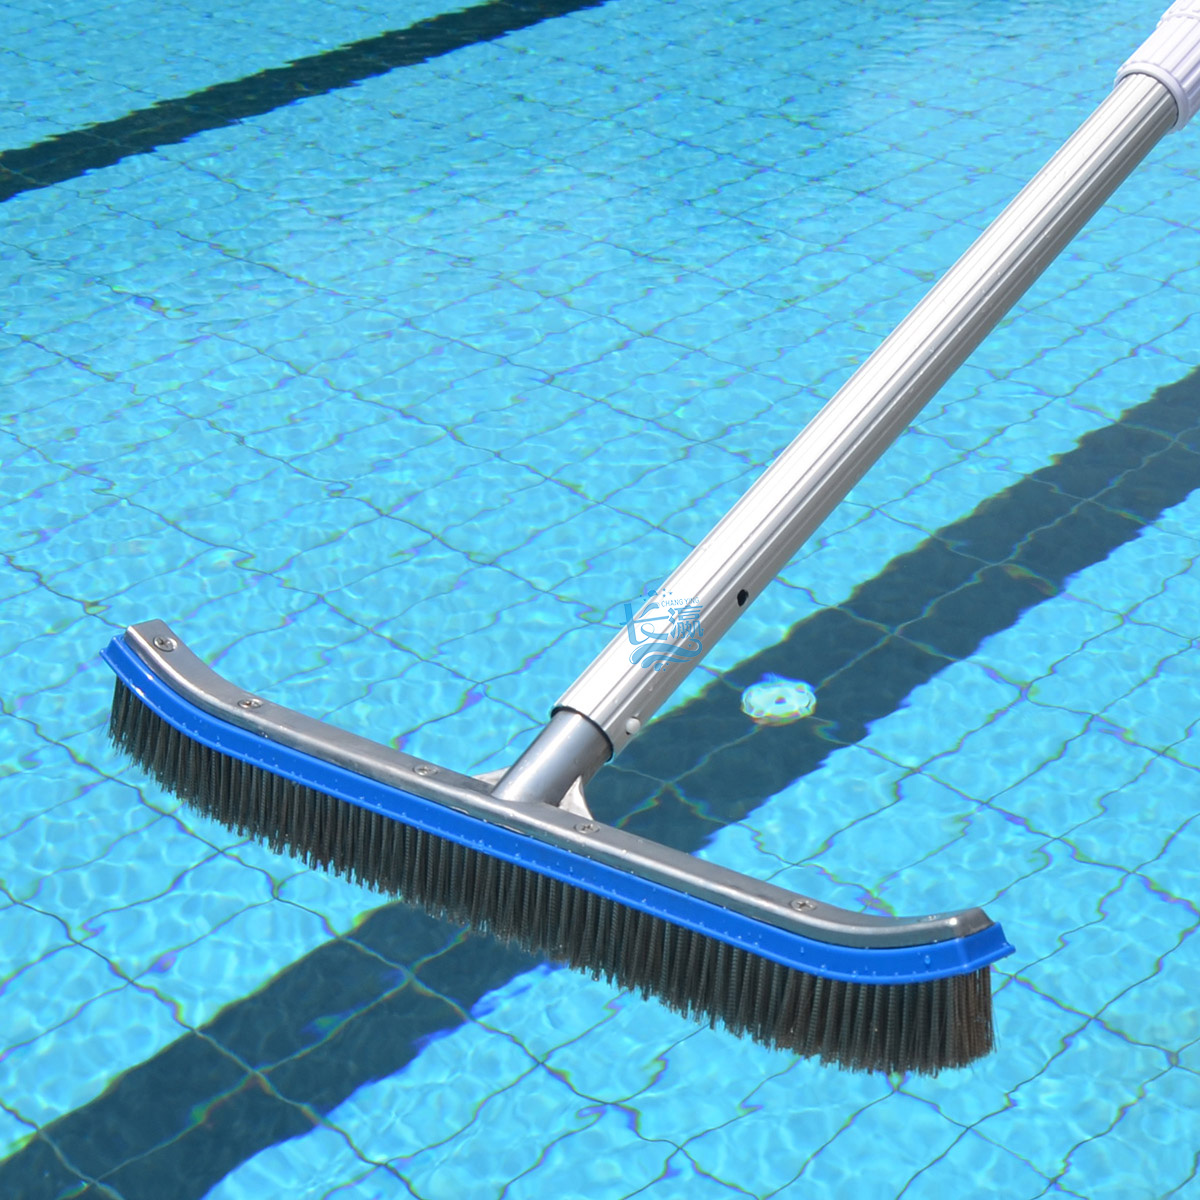 Stainless Steel Wire Brush To The Pool 18 Inch Aluminum Adhesive Bottom Wall Cleaning Moss Pond Tools